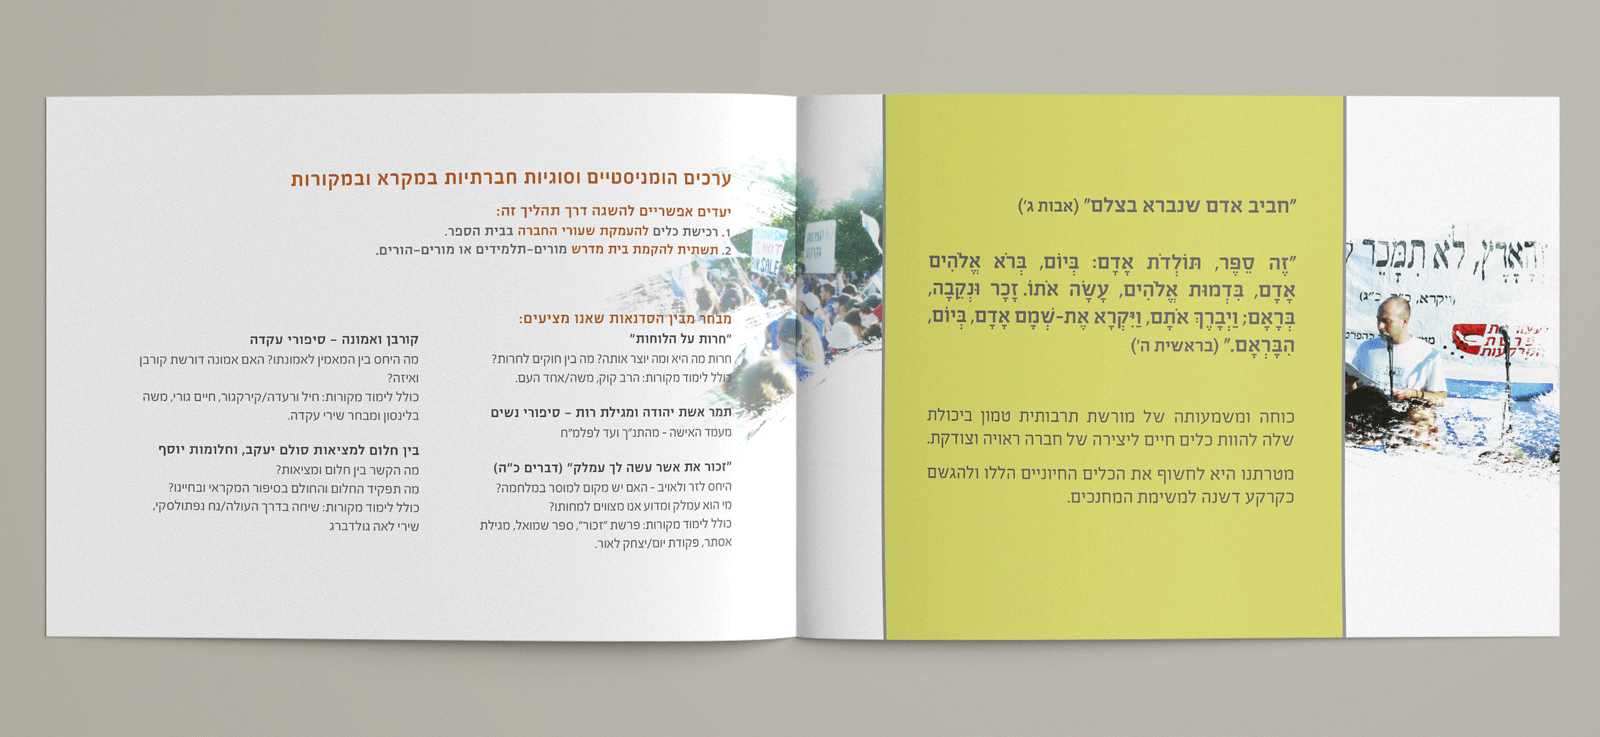 http://bigeyes.co.il/wp-content/uploads/2019/07/shitim-brochure-5.png